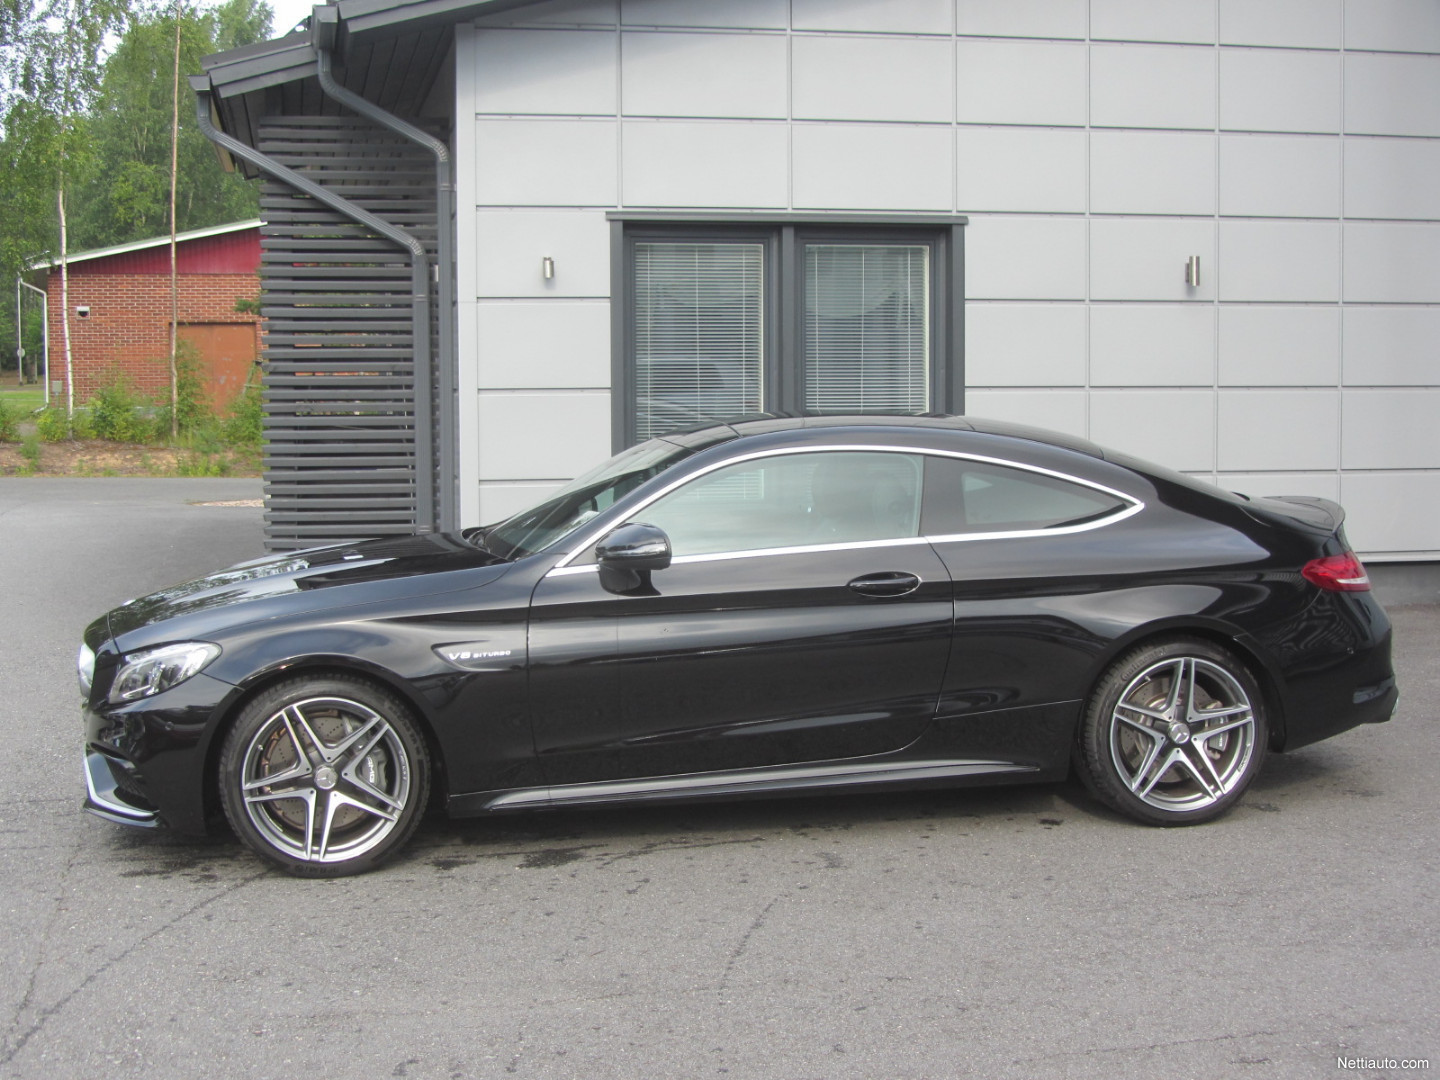 Mercedes benz c 63 amg coupe coup 2017 used vehicle for Mercedes benz remote start instructions